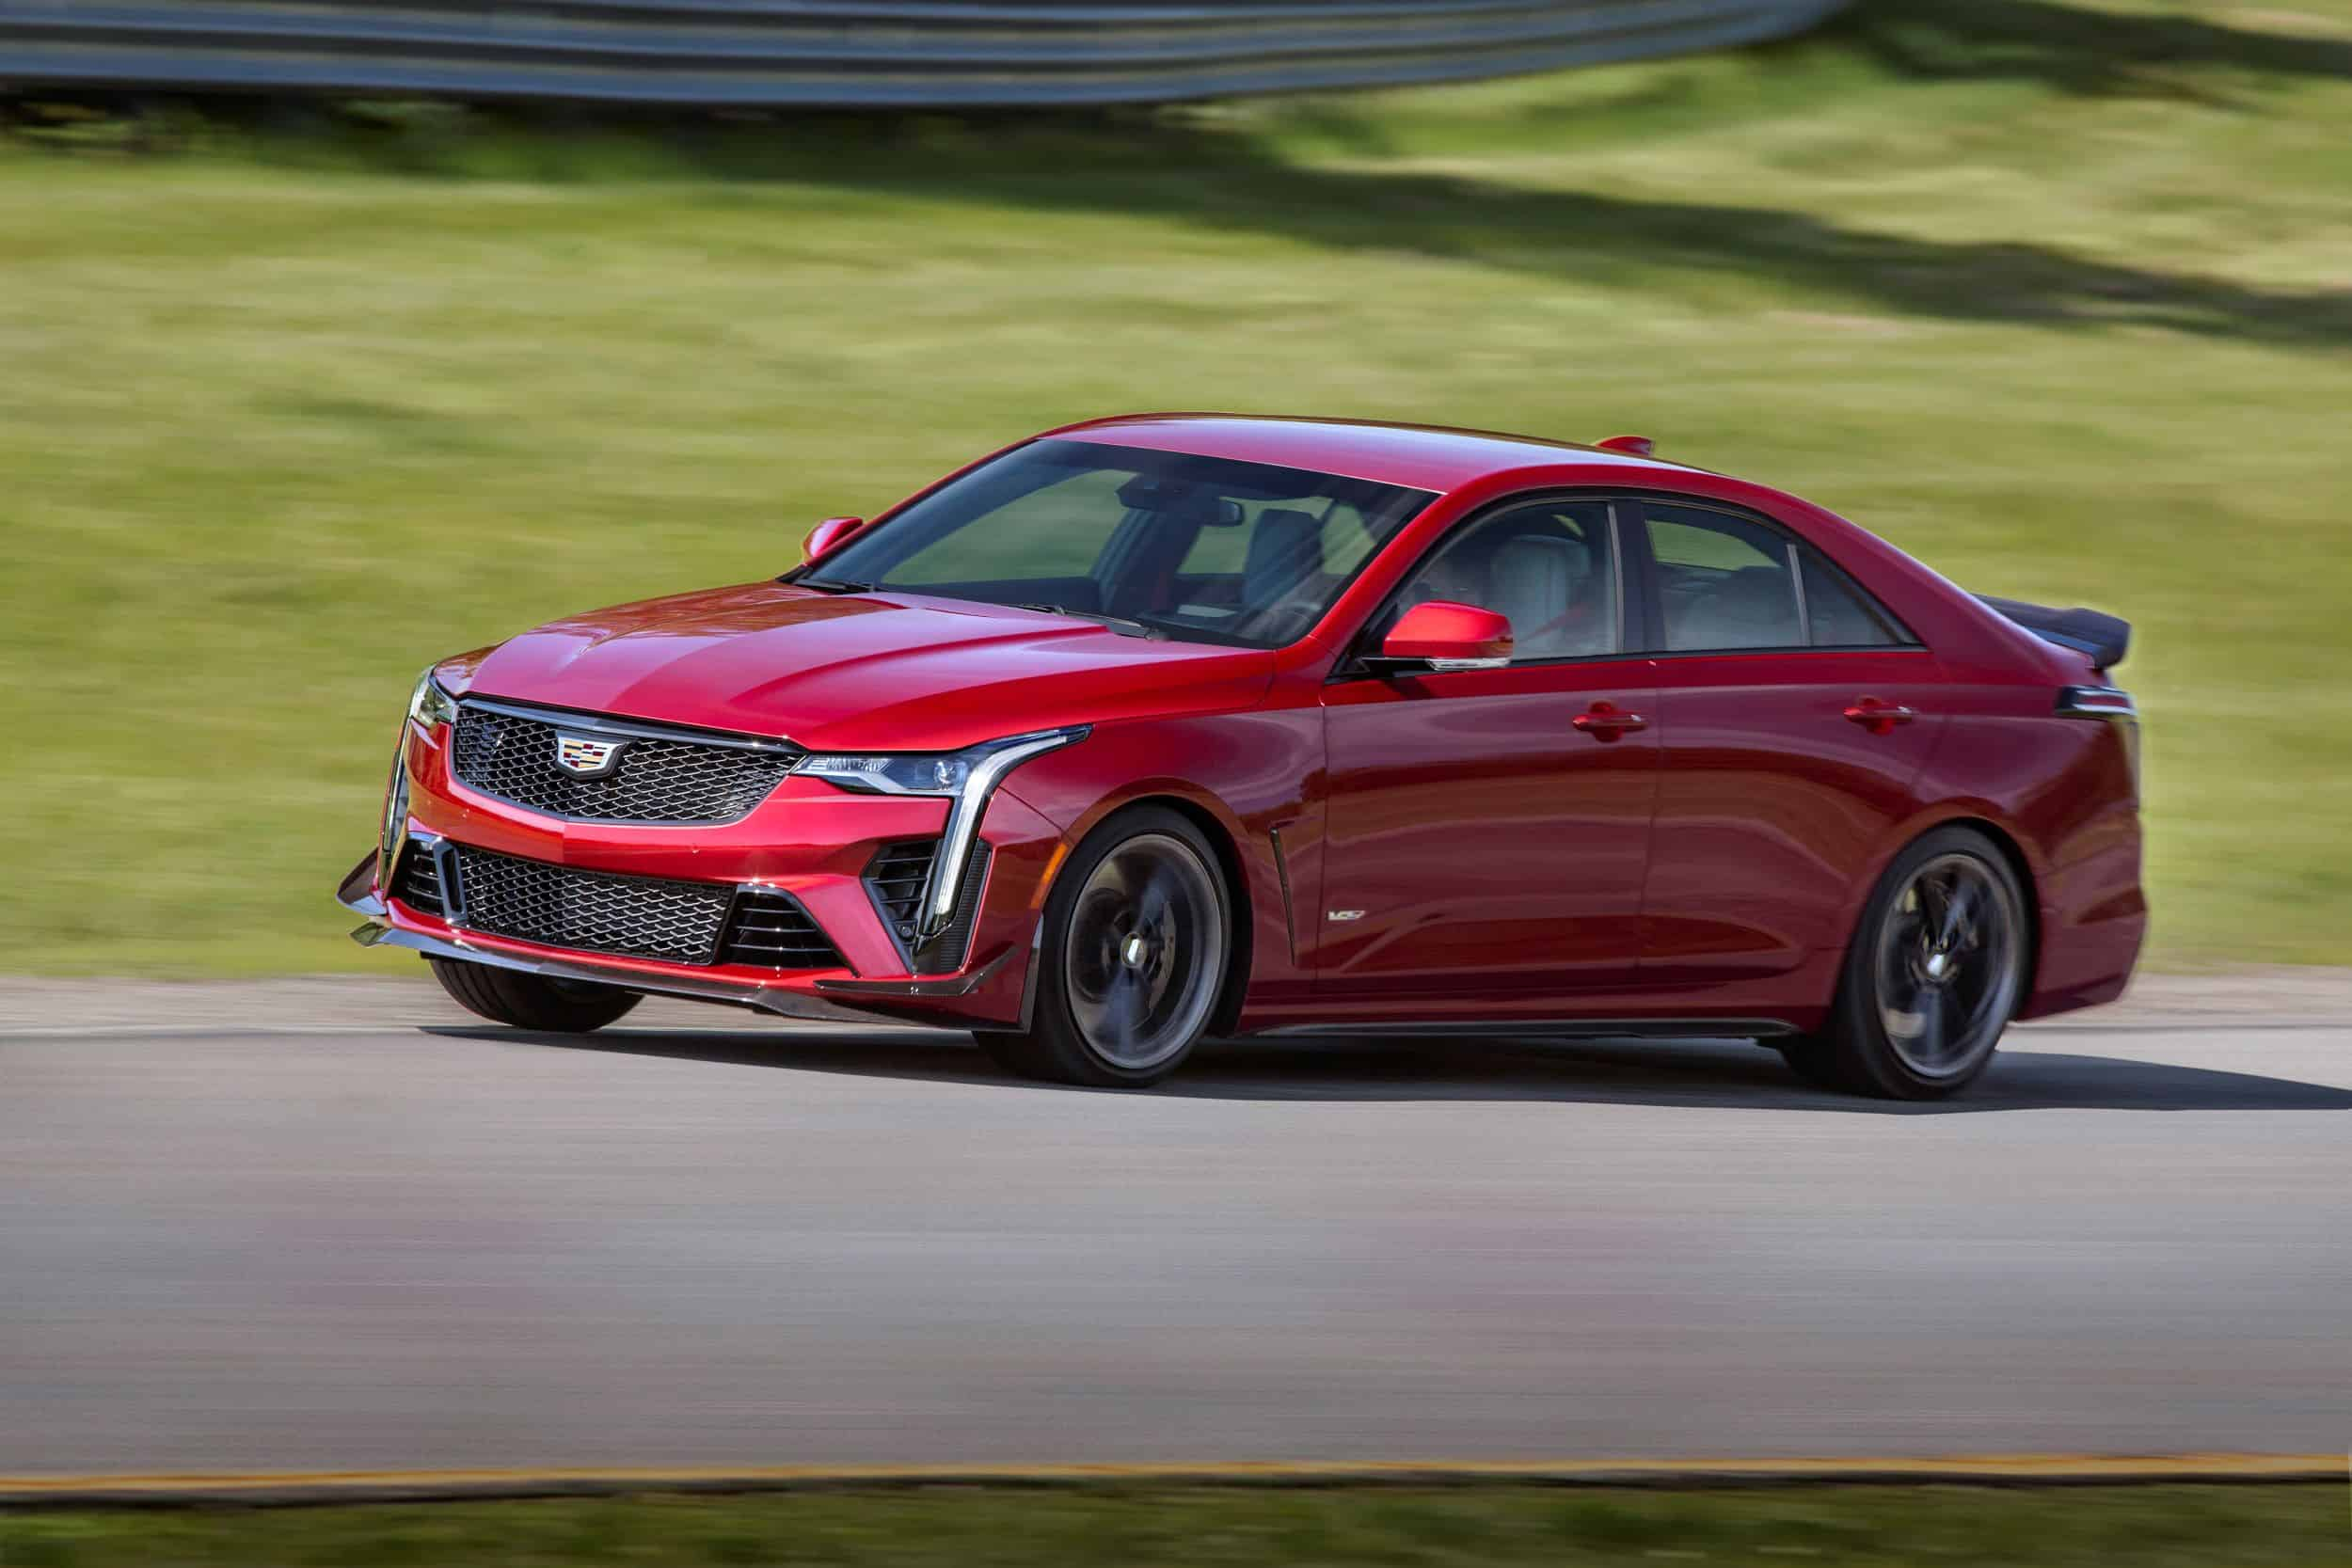 2022 Cadillac CT4-V Blackwing Delivers Highest Downforce in V-Series History